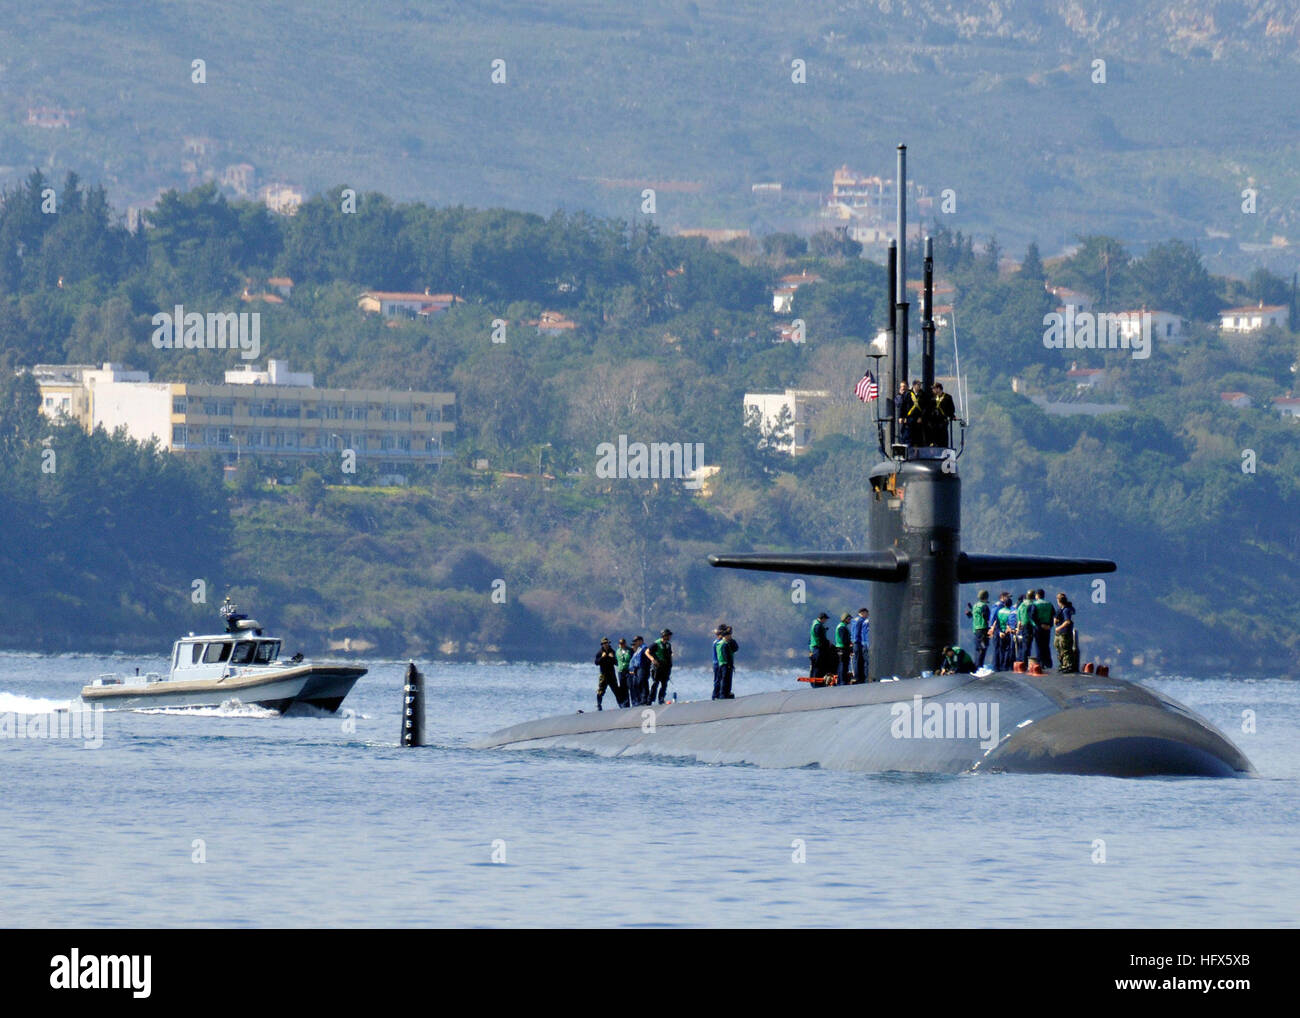 090222-N-0780F-001 SOUDA BAY (Feb. 22, 2009) The Los Angeles class attack submarine USS Albuquerque (SSN 706) is - Stock Image